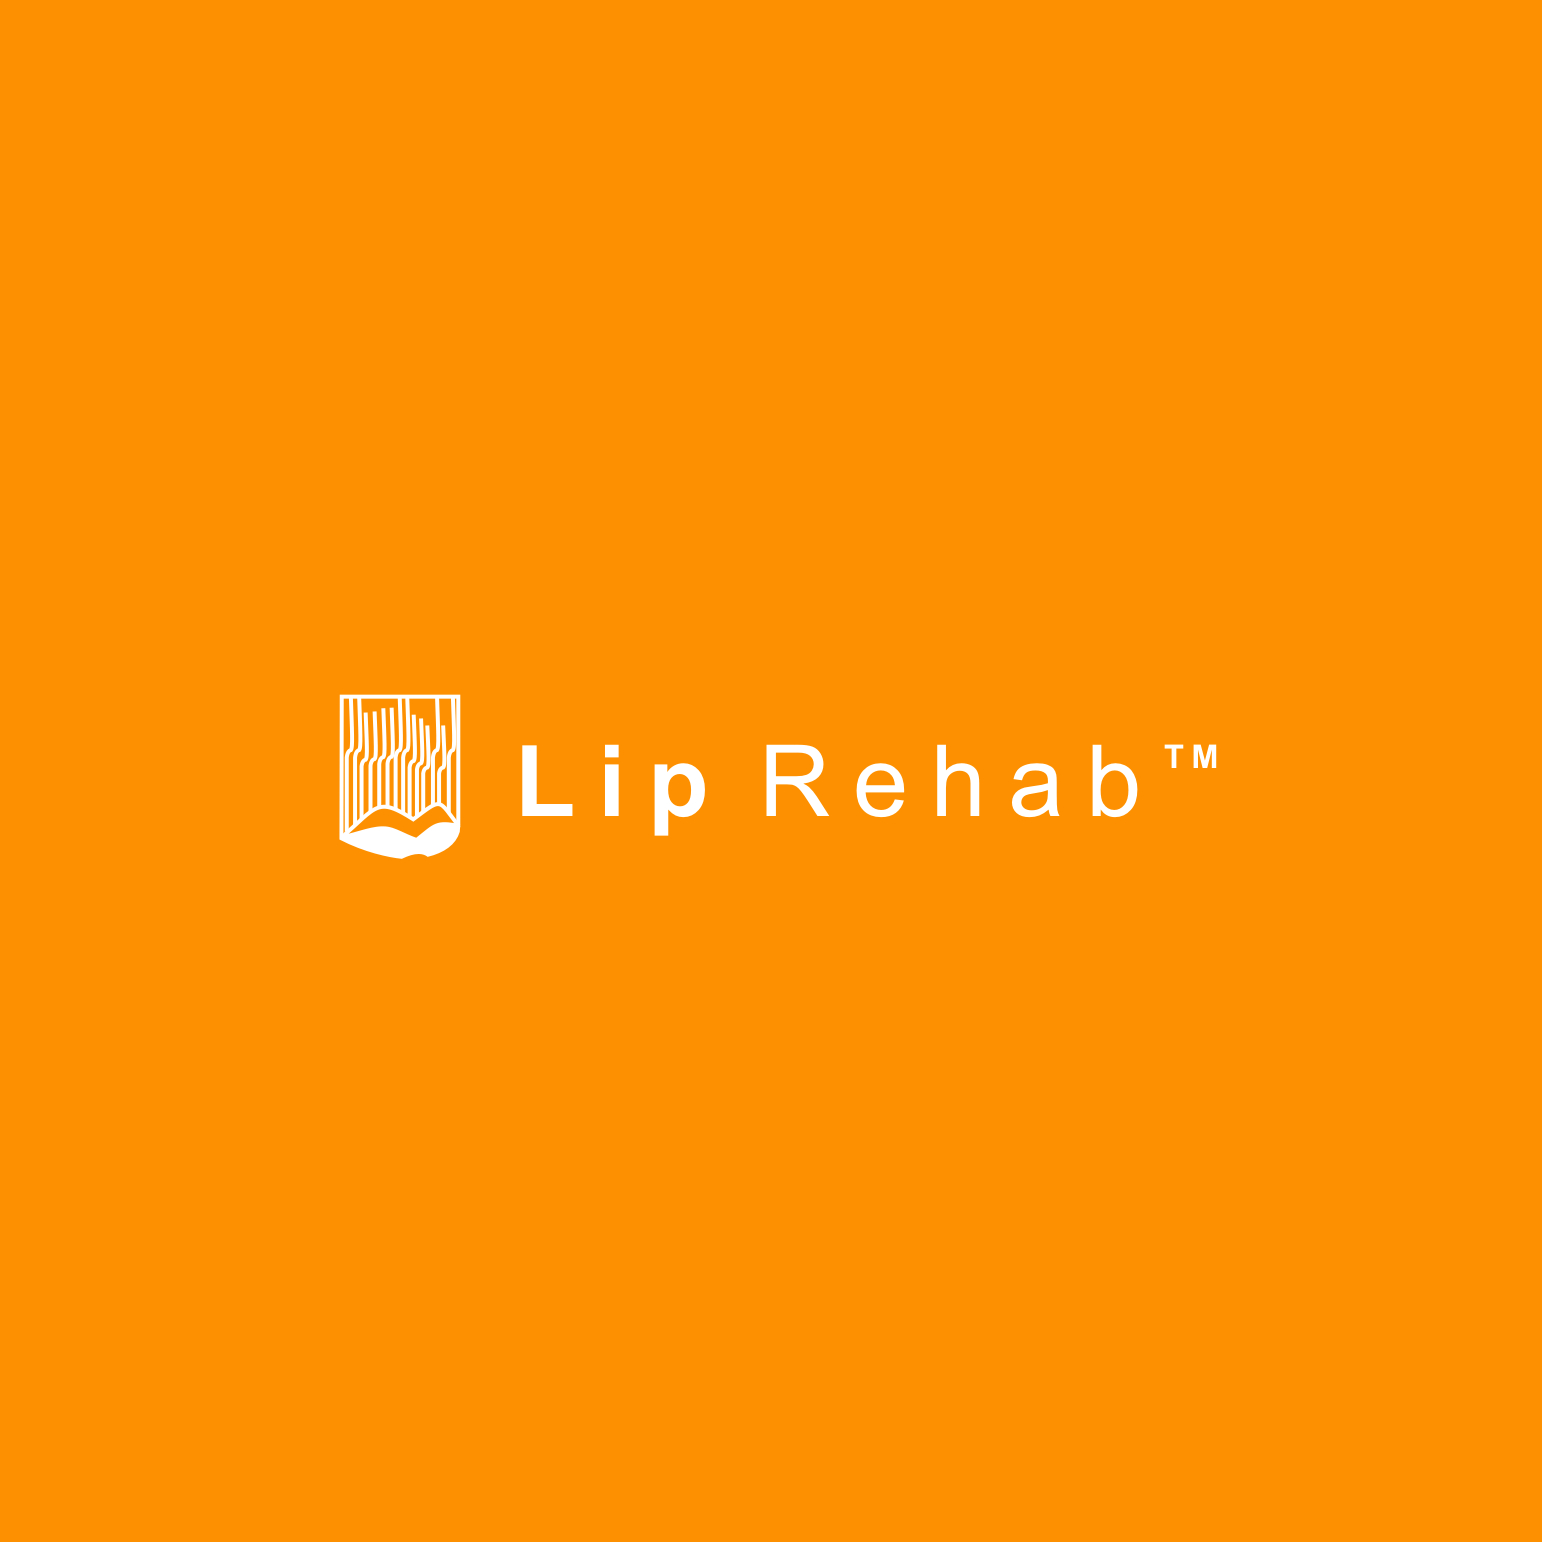 Logo Design by Think - Entry No. 92 in the Logo Design Contest Creative Logo Design for Lip Rehab.